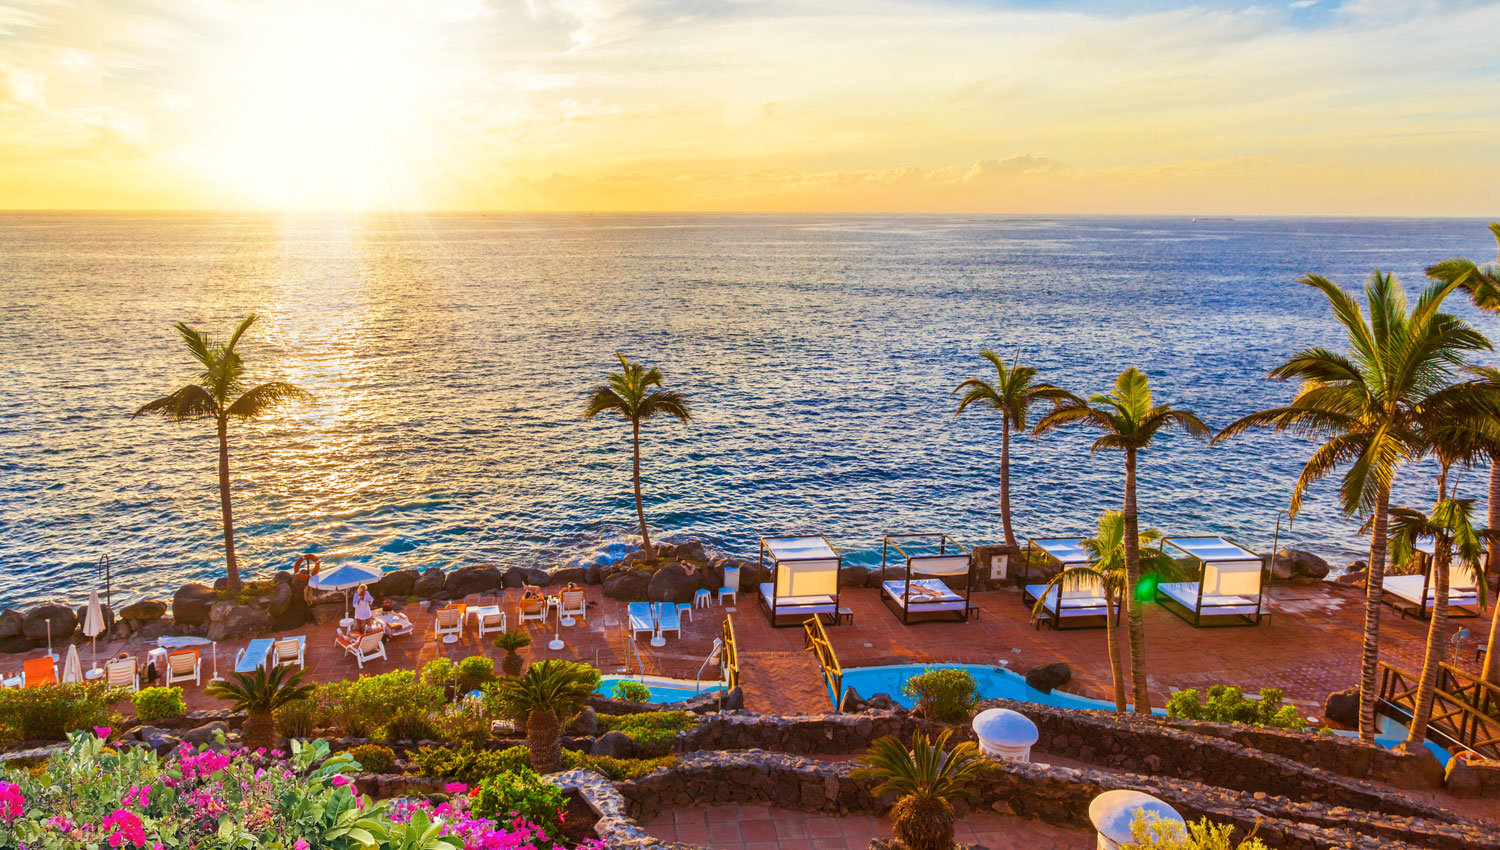 Costa Adeje header